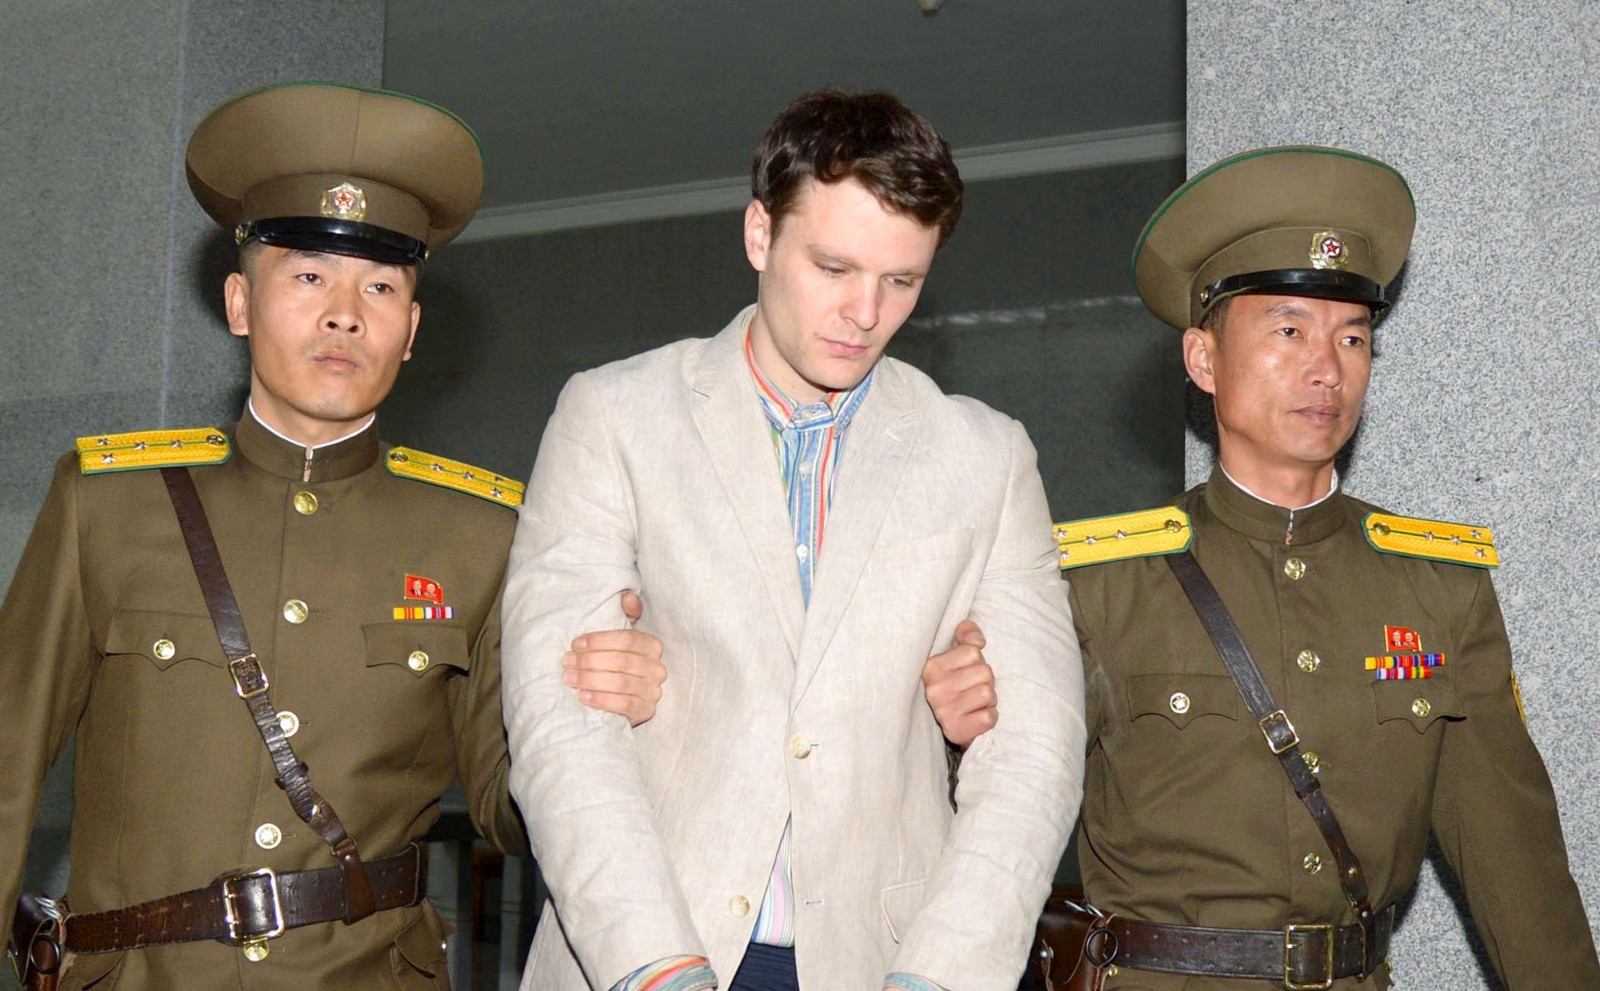 North Korea detained American student